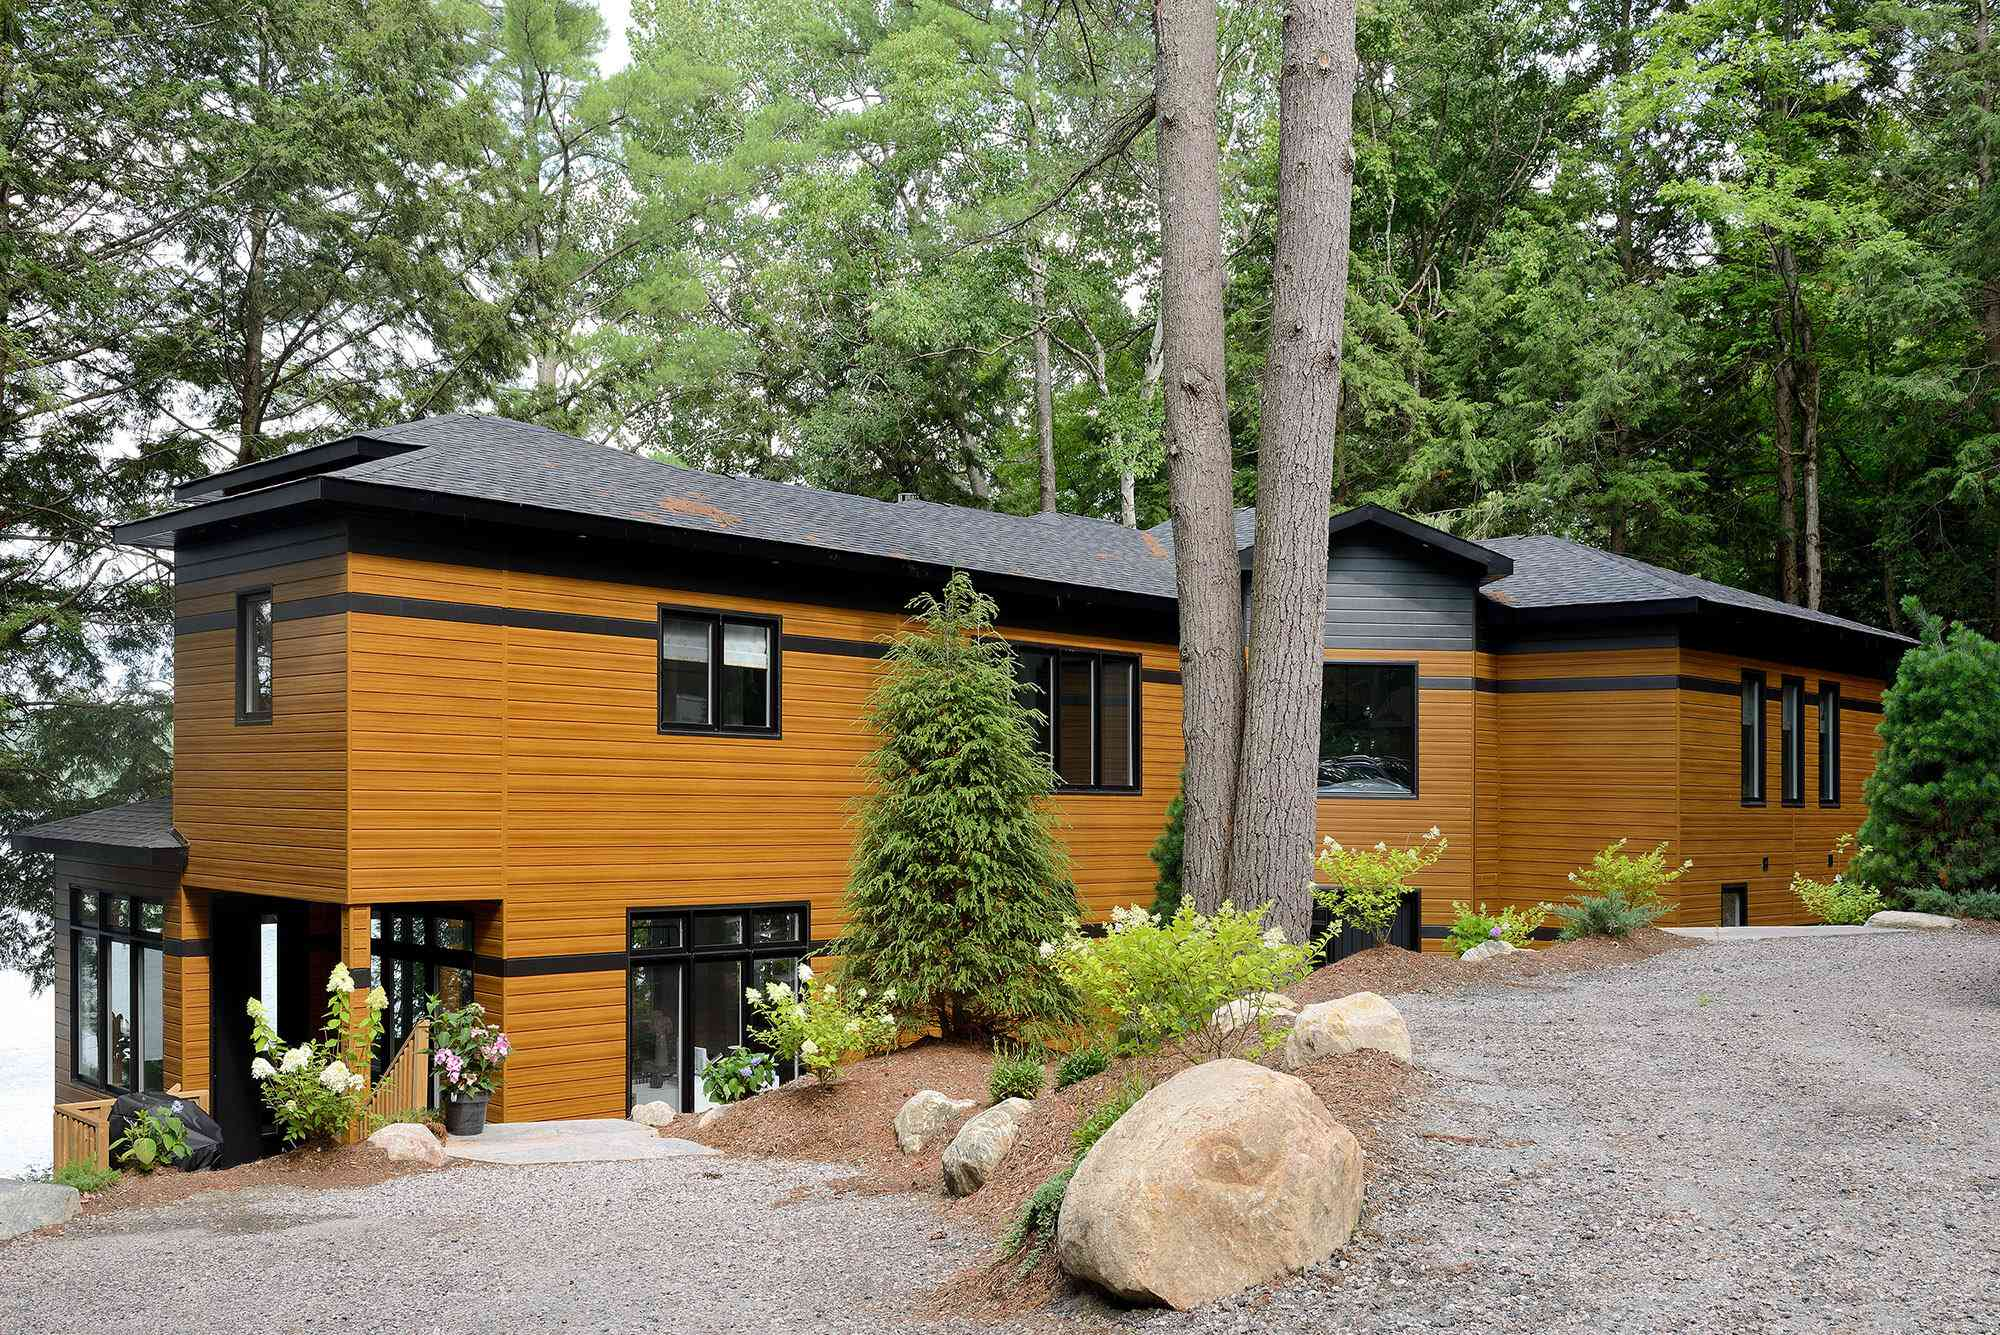 Cabin exterior with evergreen trees.